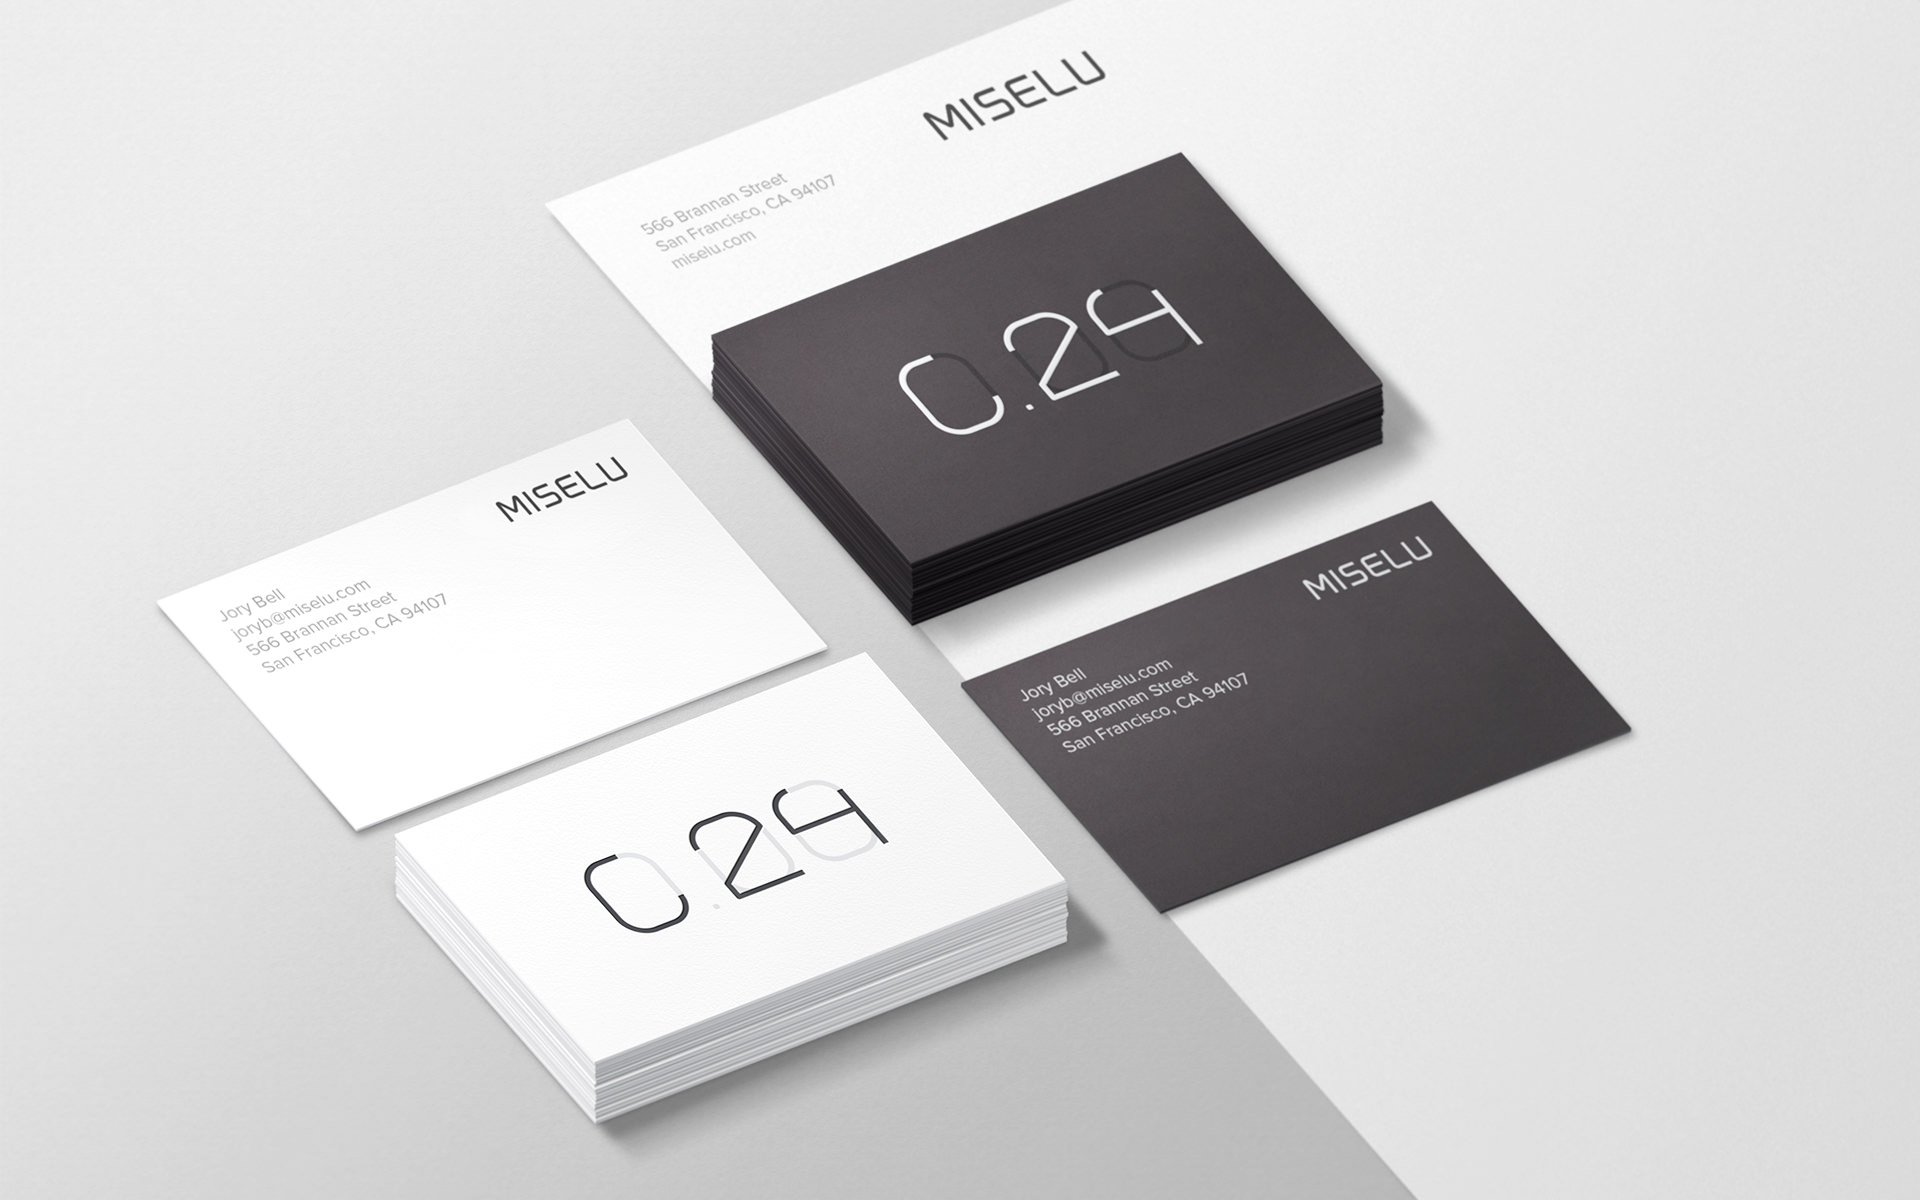 10+-Examples-of-Minimalist-Design-to-Inspire-Your-Own-Creations-Business-Cards